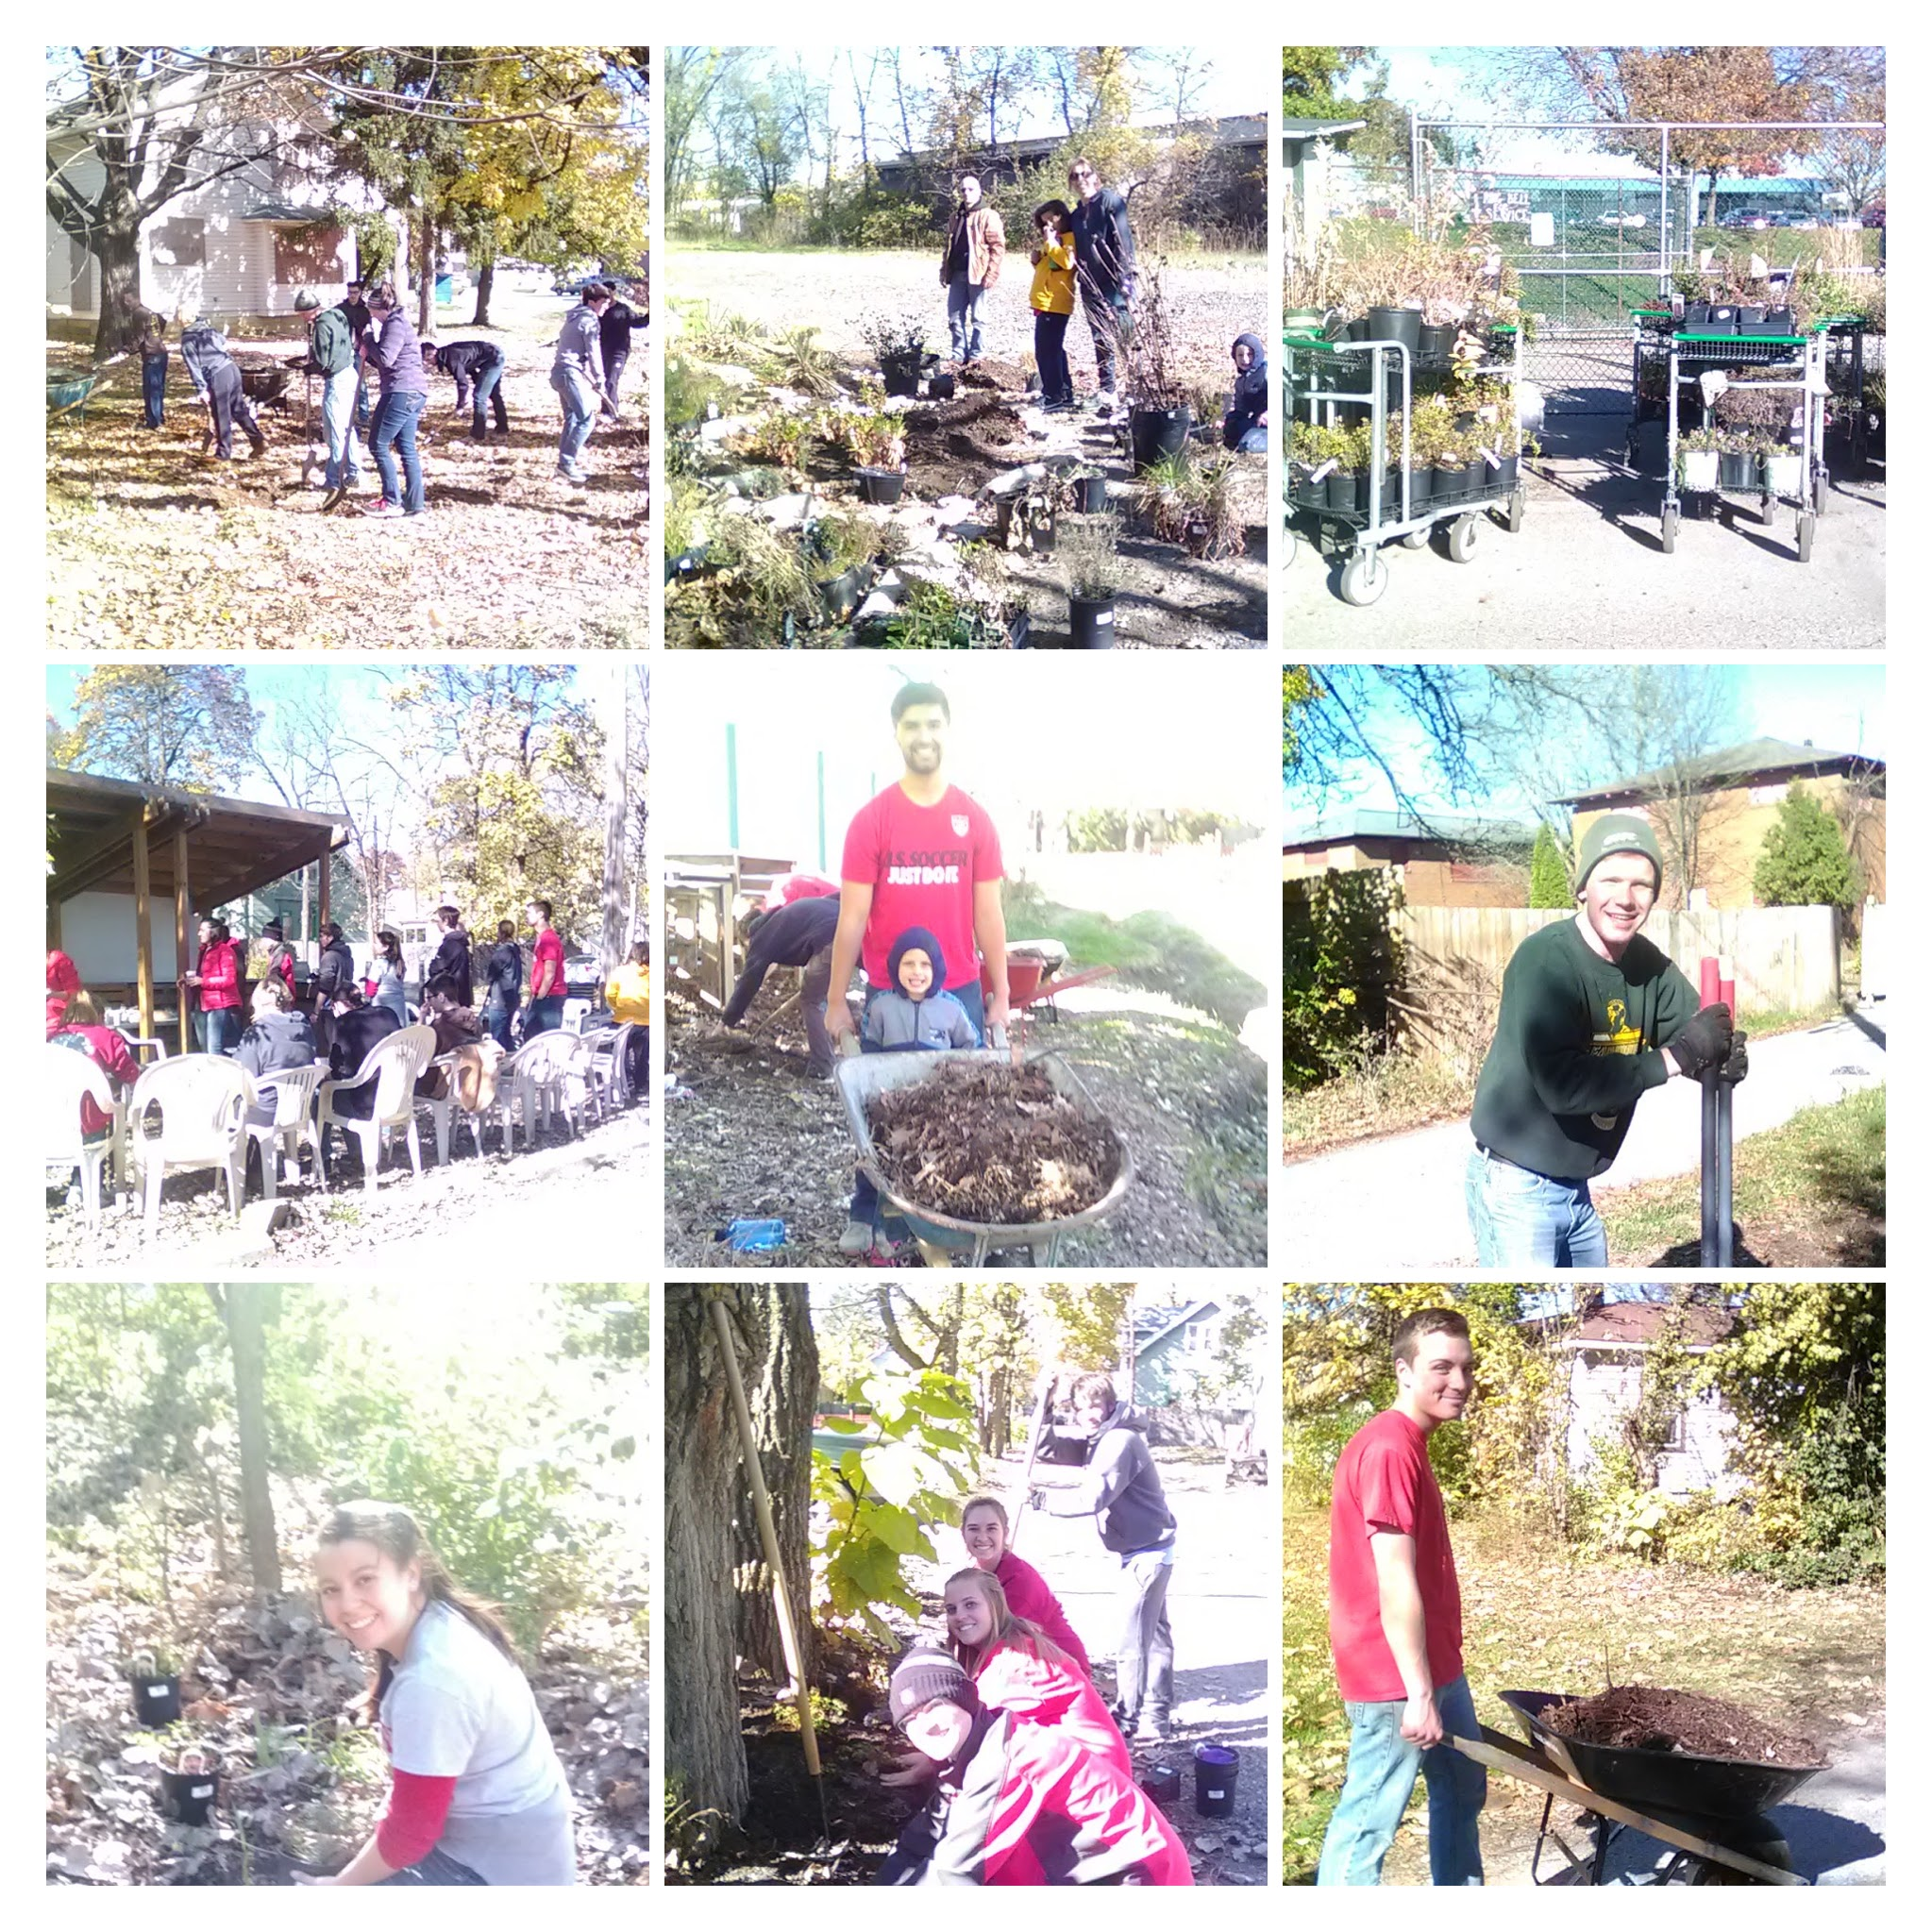 workday-11-12-2016-miracle-community-garden